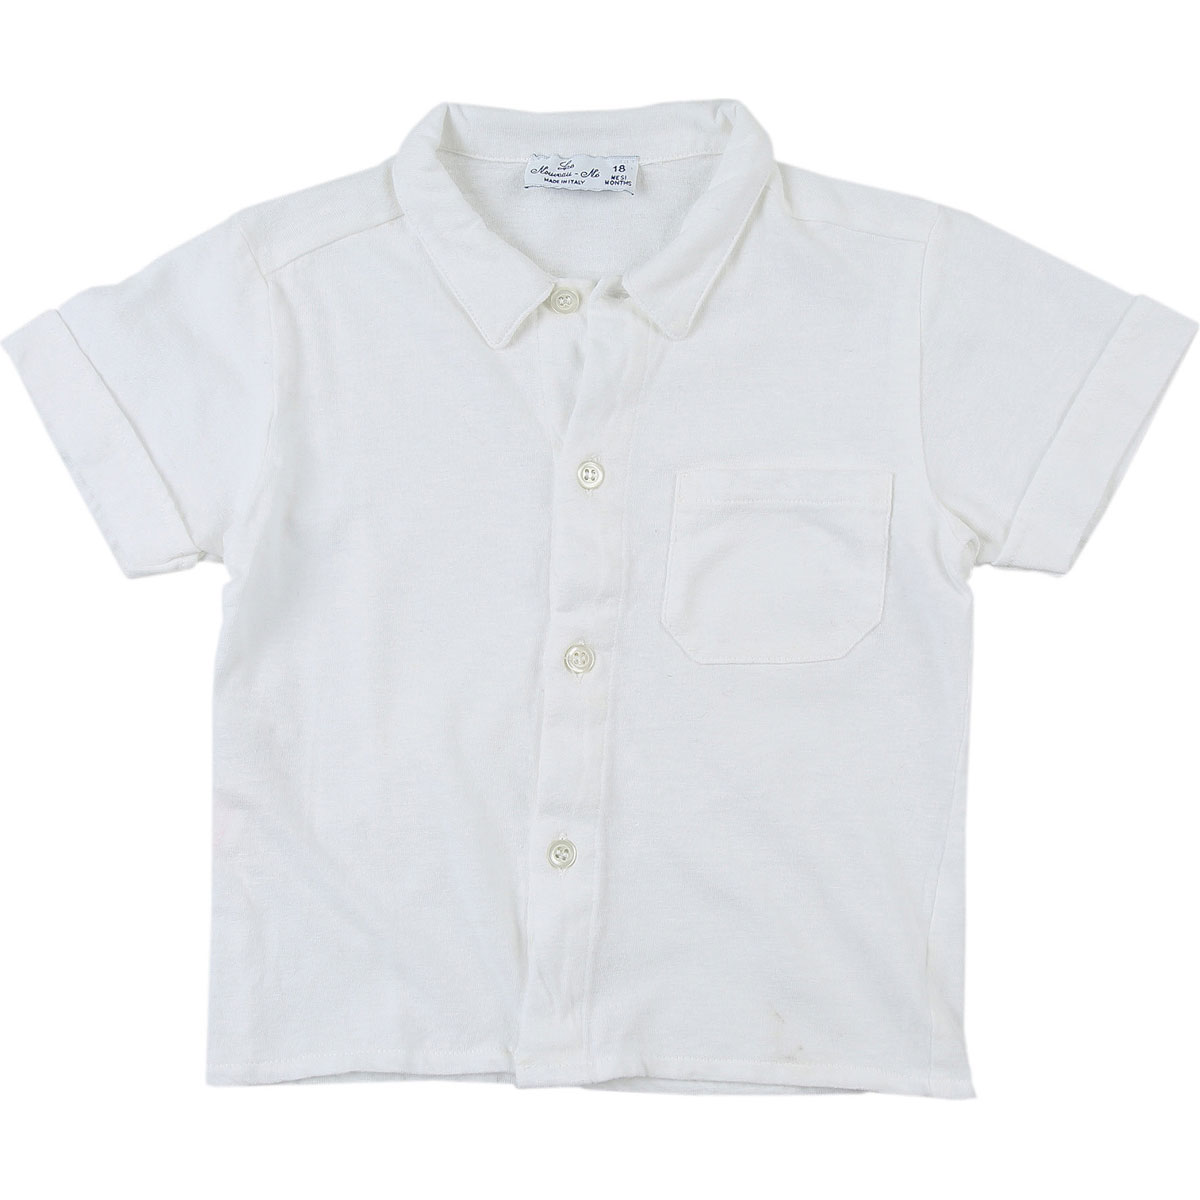 Le Nouveau Ne Baby Shirts for Boys On Sale in Outlet, White, Cotton, 2019, 18M 2Y